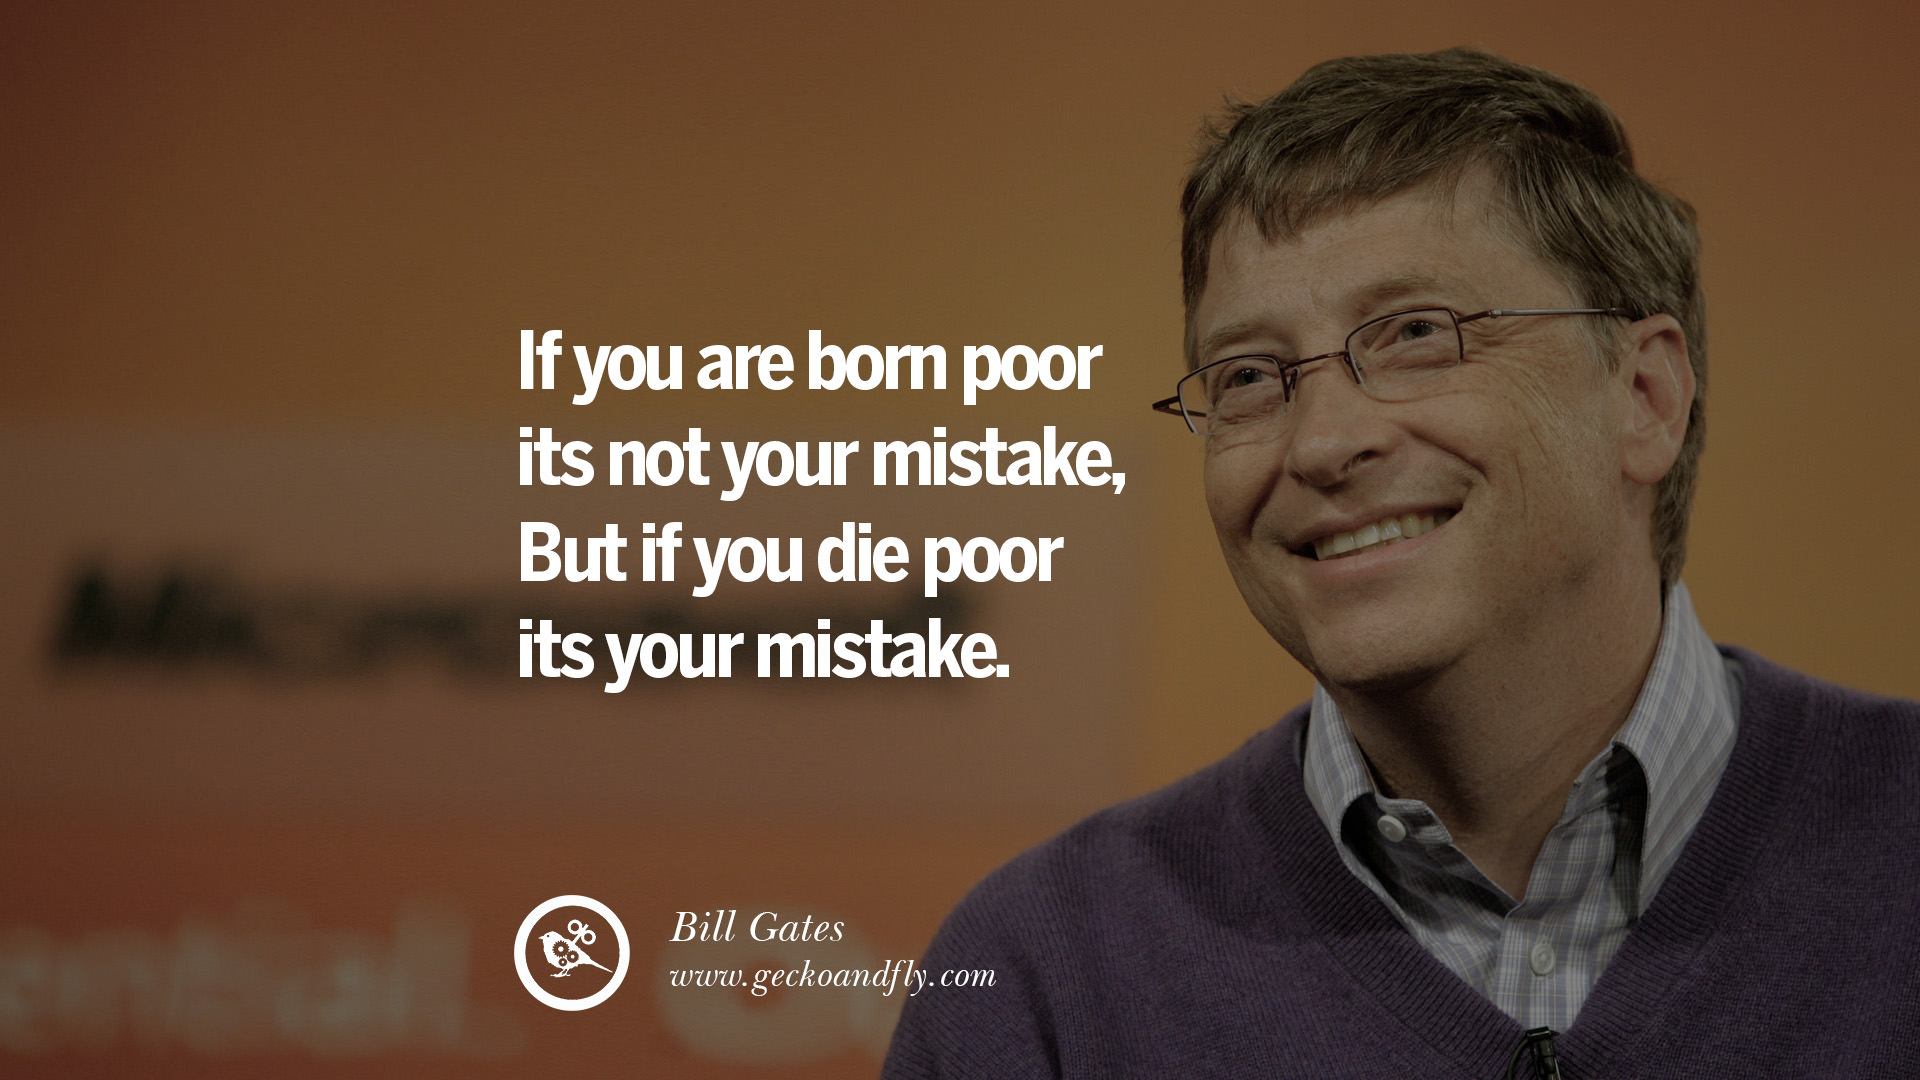 Poor Life Quotes Stunning 15 Inspiring Bill Gates Quotes On Success And Life  Geckoandfly 2018